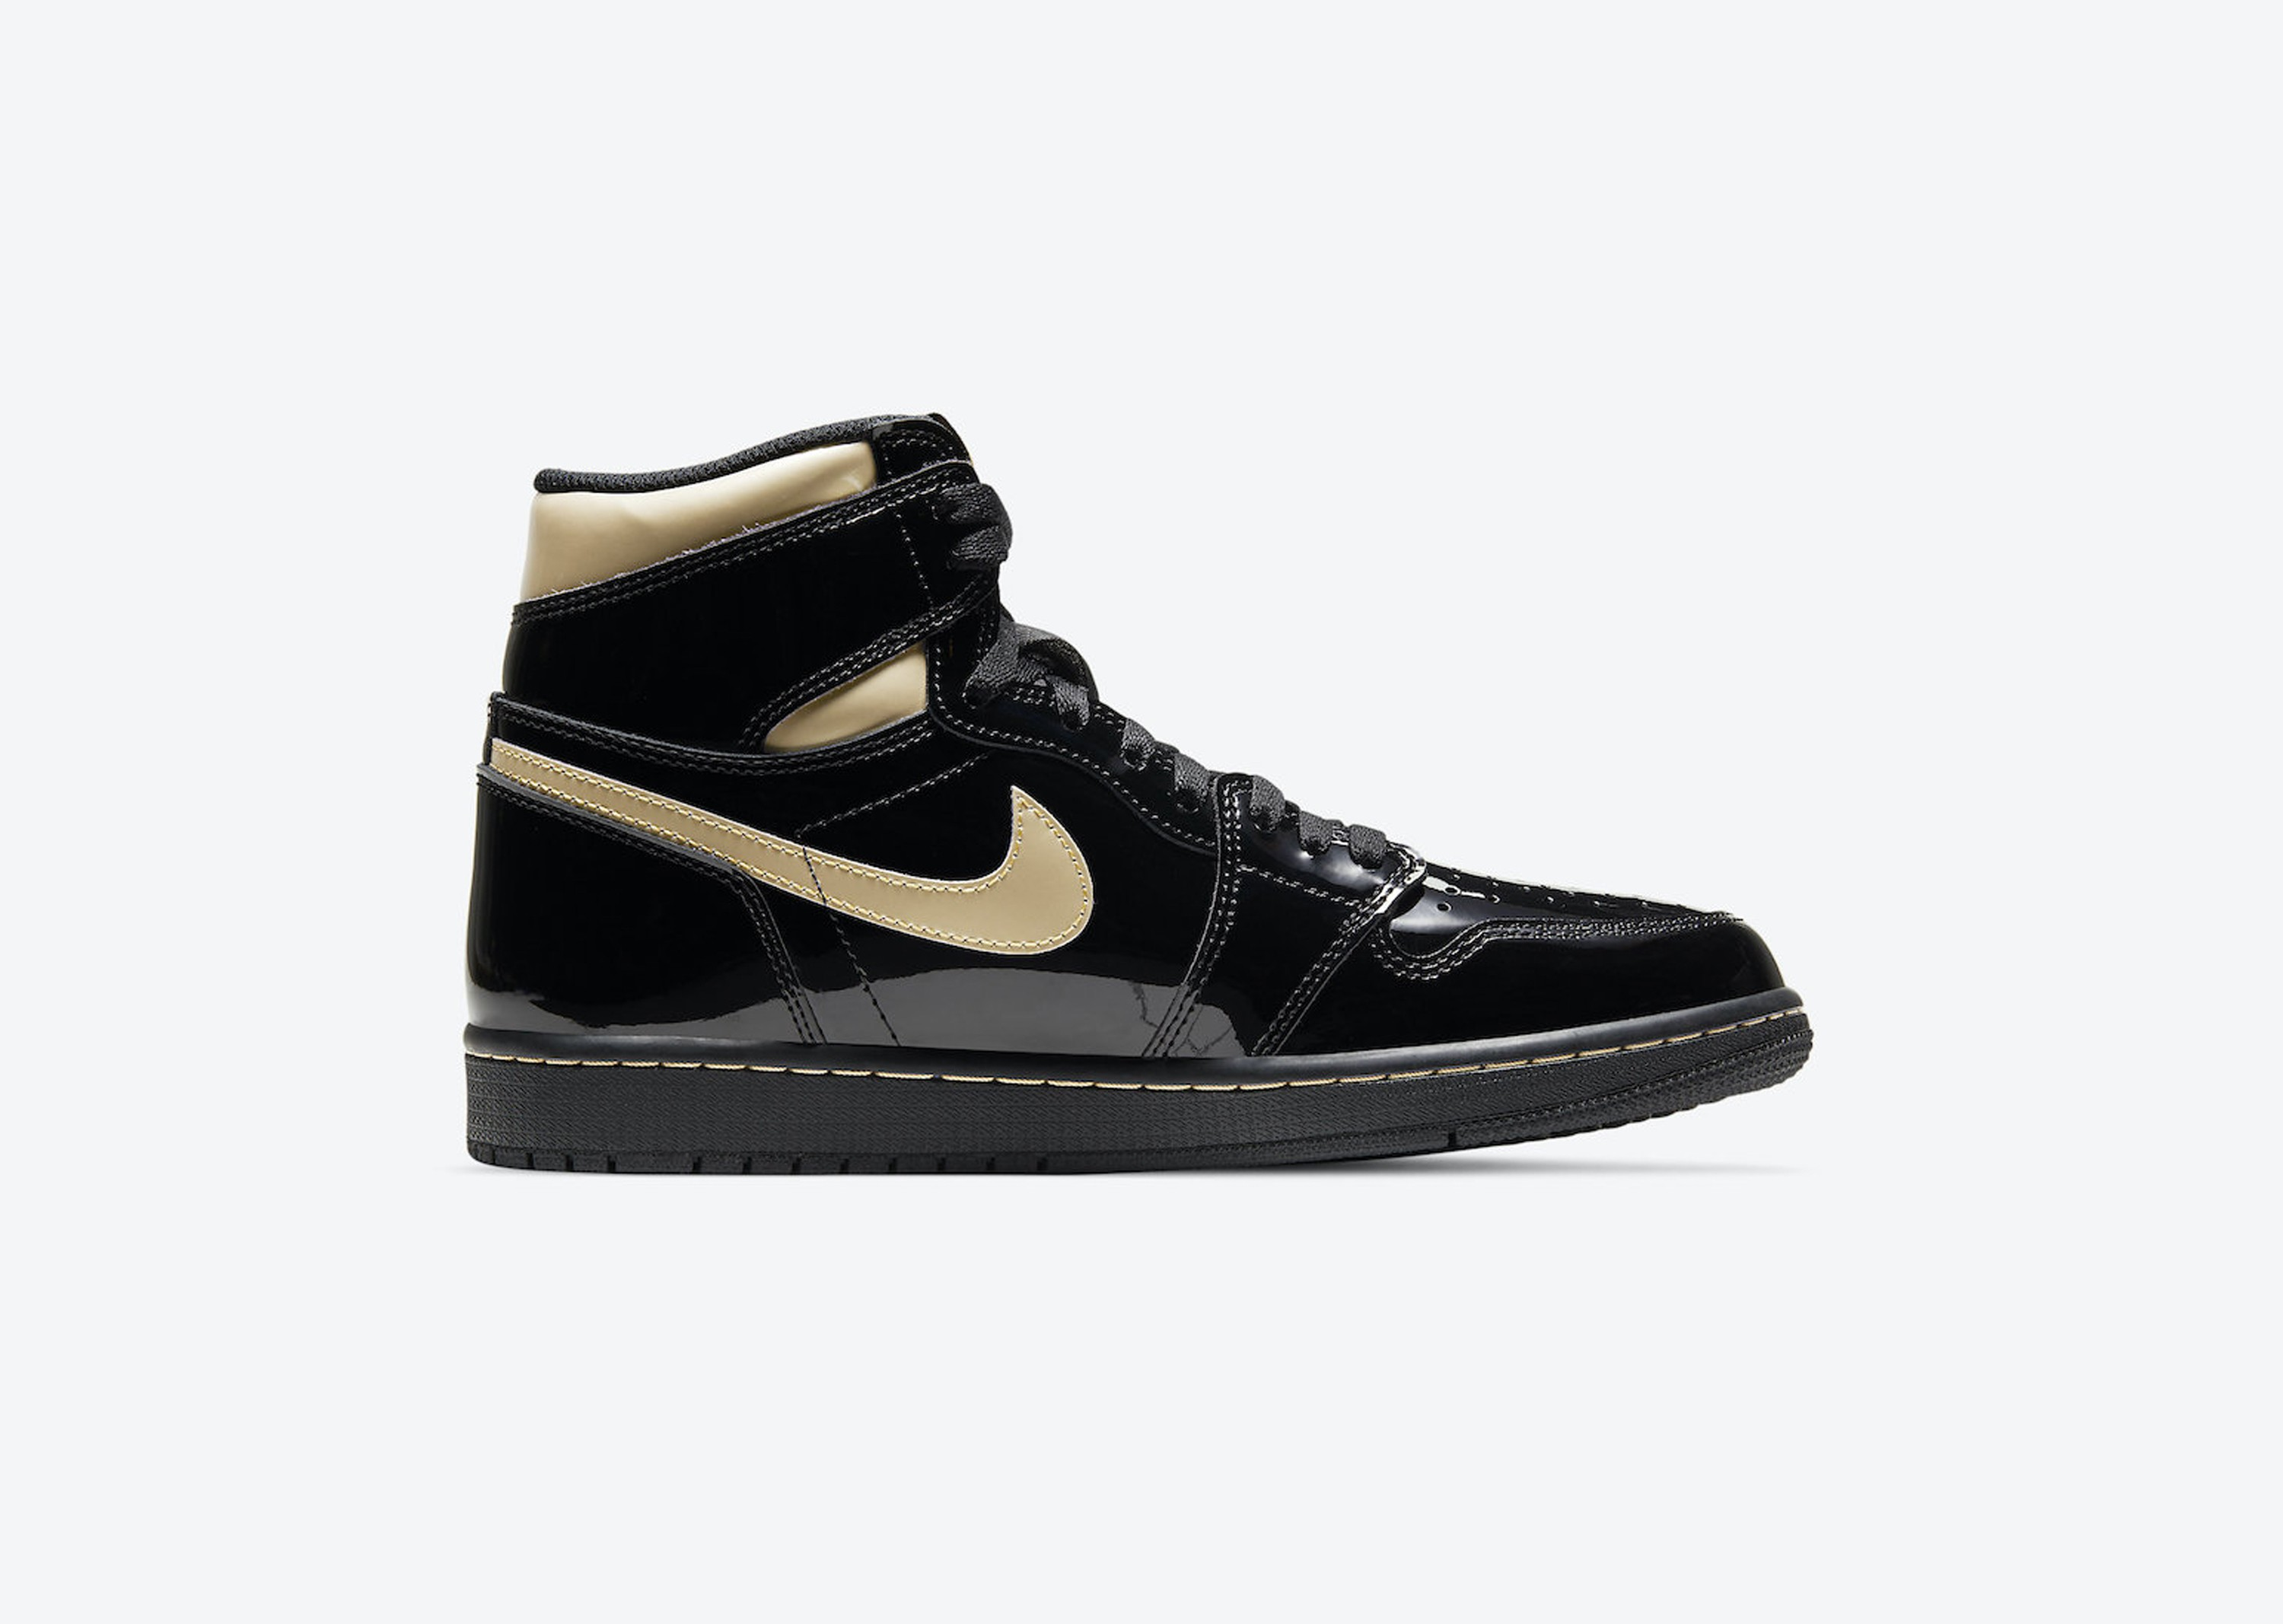 AJ1_BLACK_GOLD__0001_Layer 9